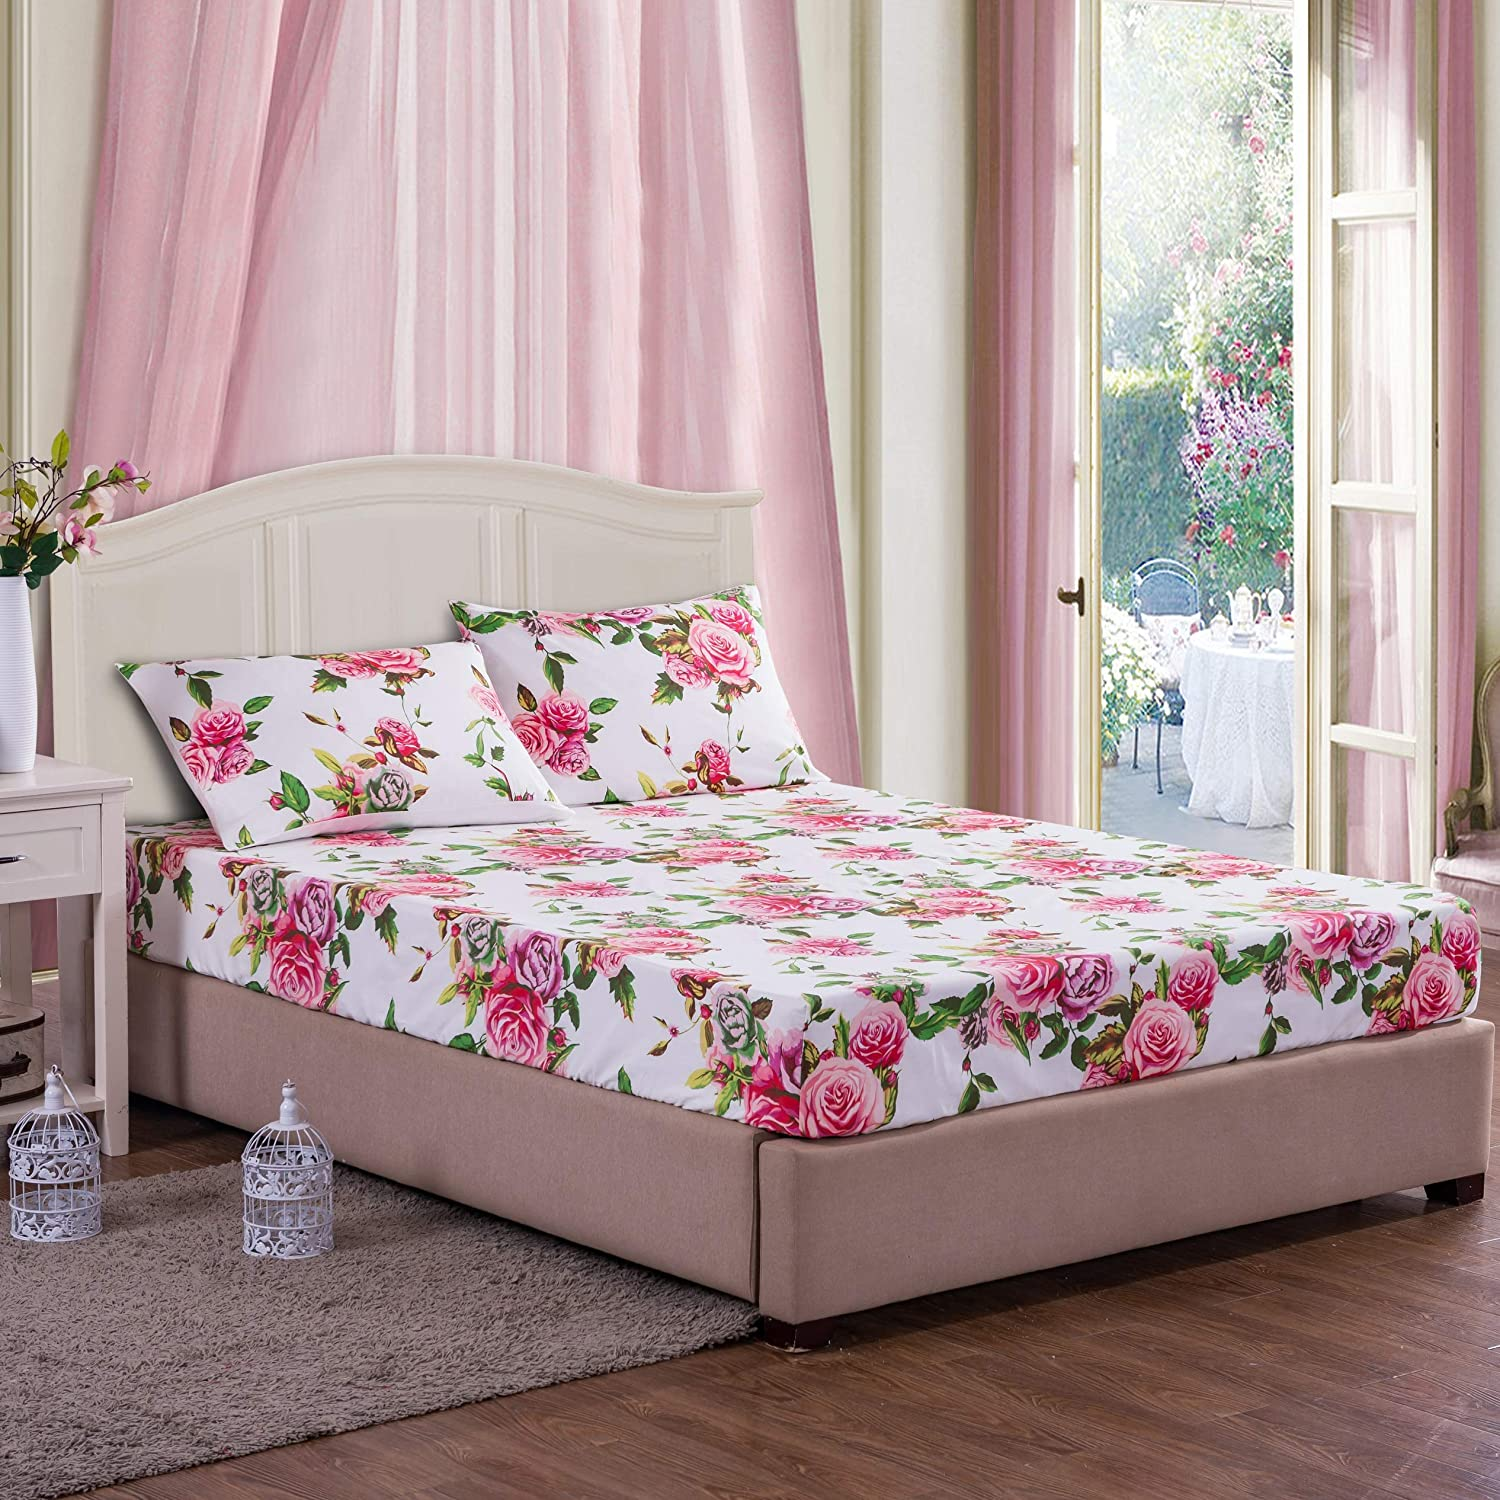 DaDa Bedding Romantic Roses Fitted Sheet Cotton Lovely Spring Pink Floral Colorful 3-Pieces Queen Bright Vibrant w//Pillow Cases Set